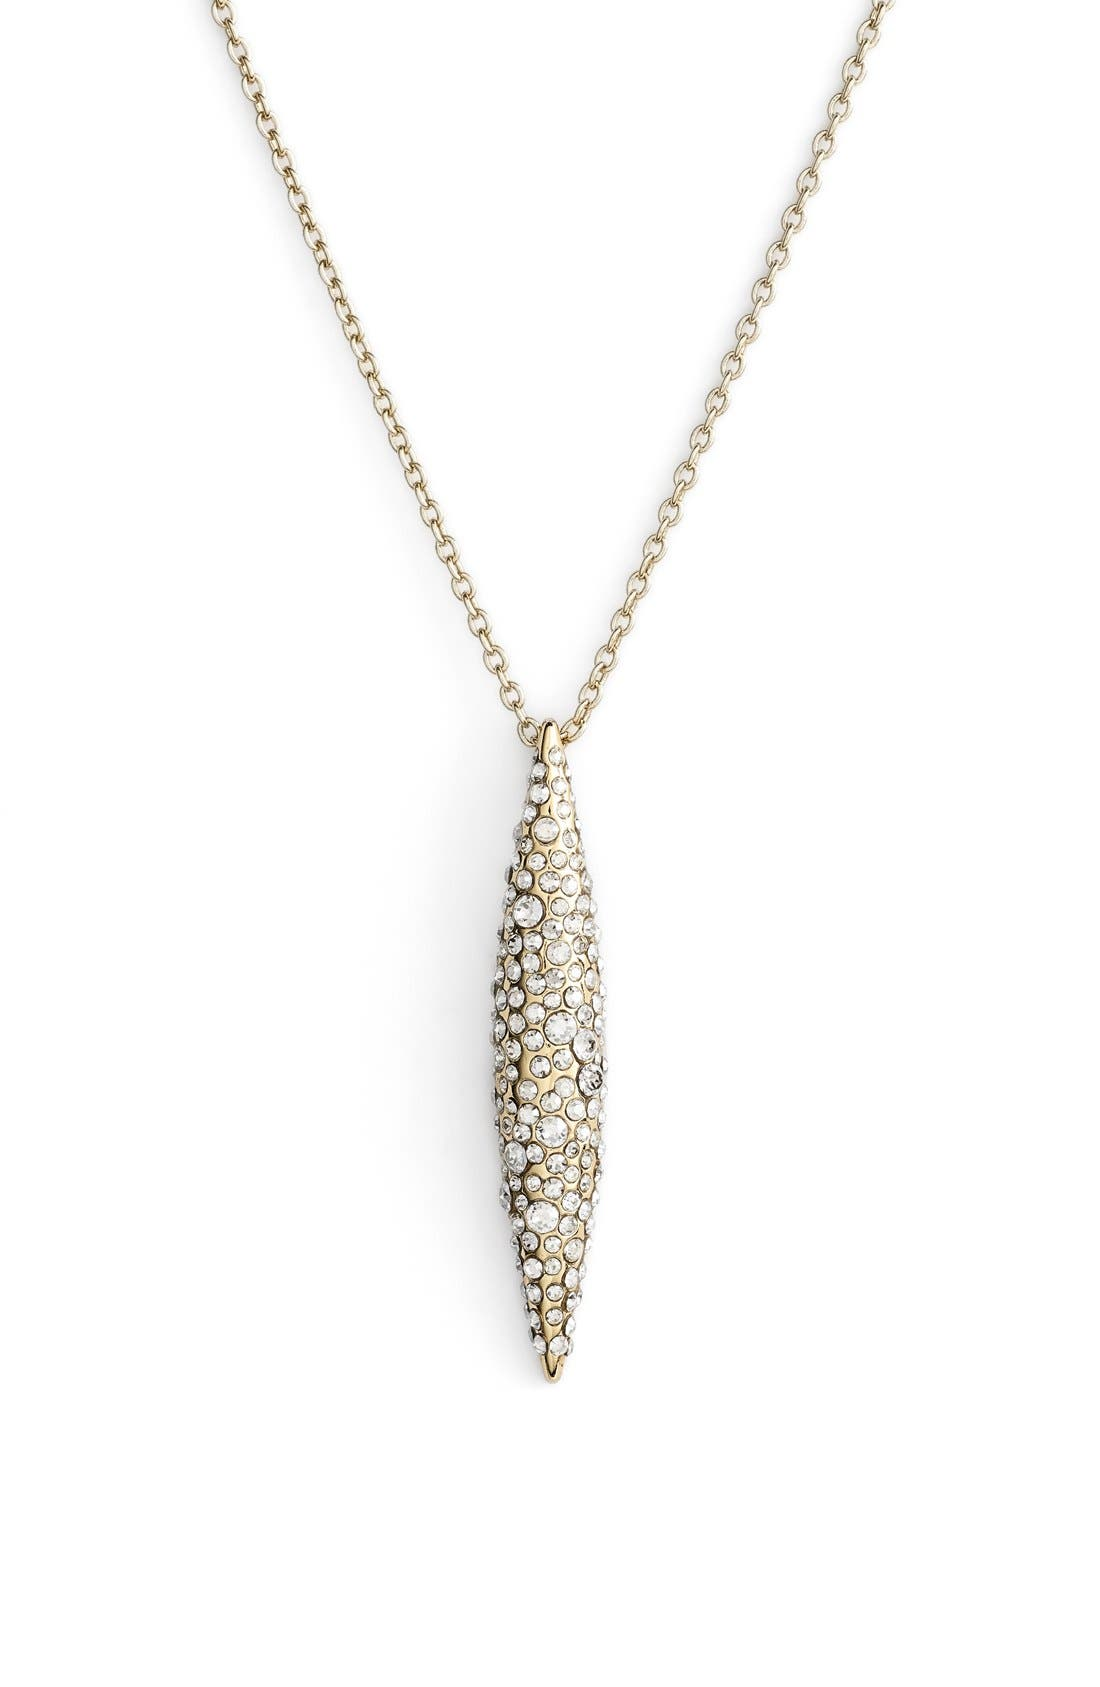 Main Image - Alexis Bittar 'Miss Havisham' Crystal Encrusted Spear Pendant Necklace